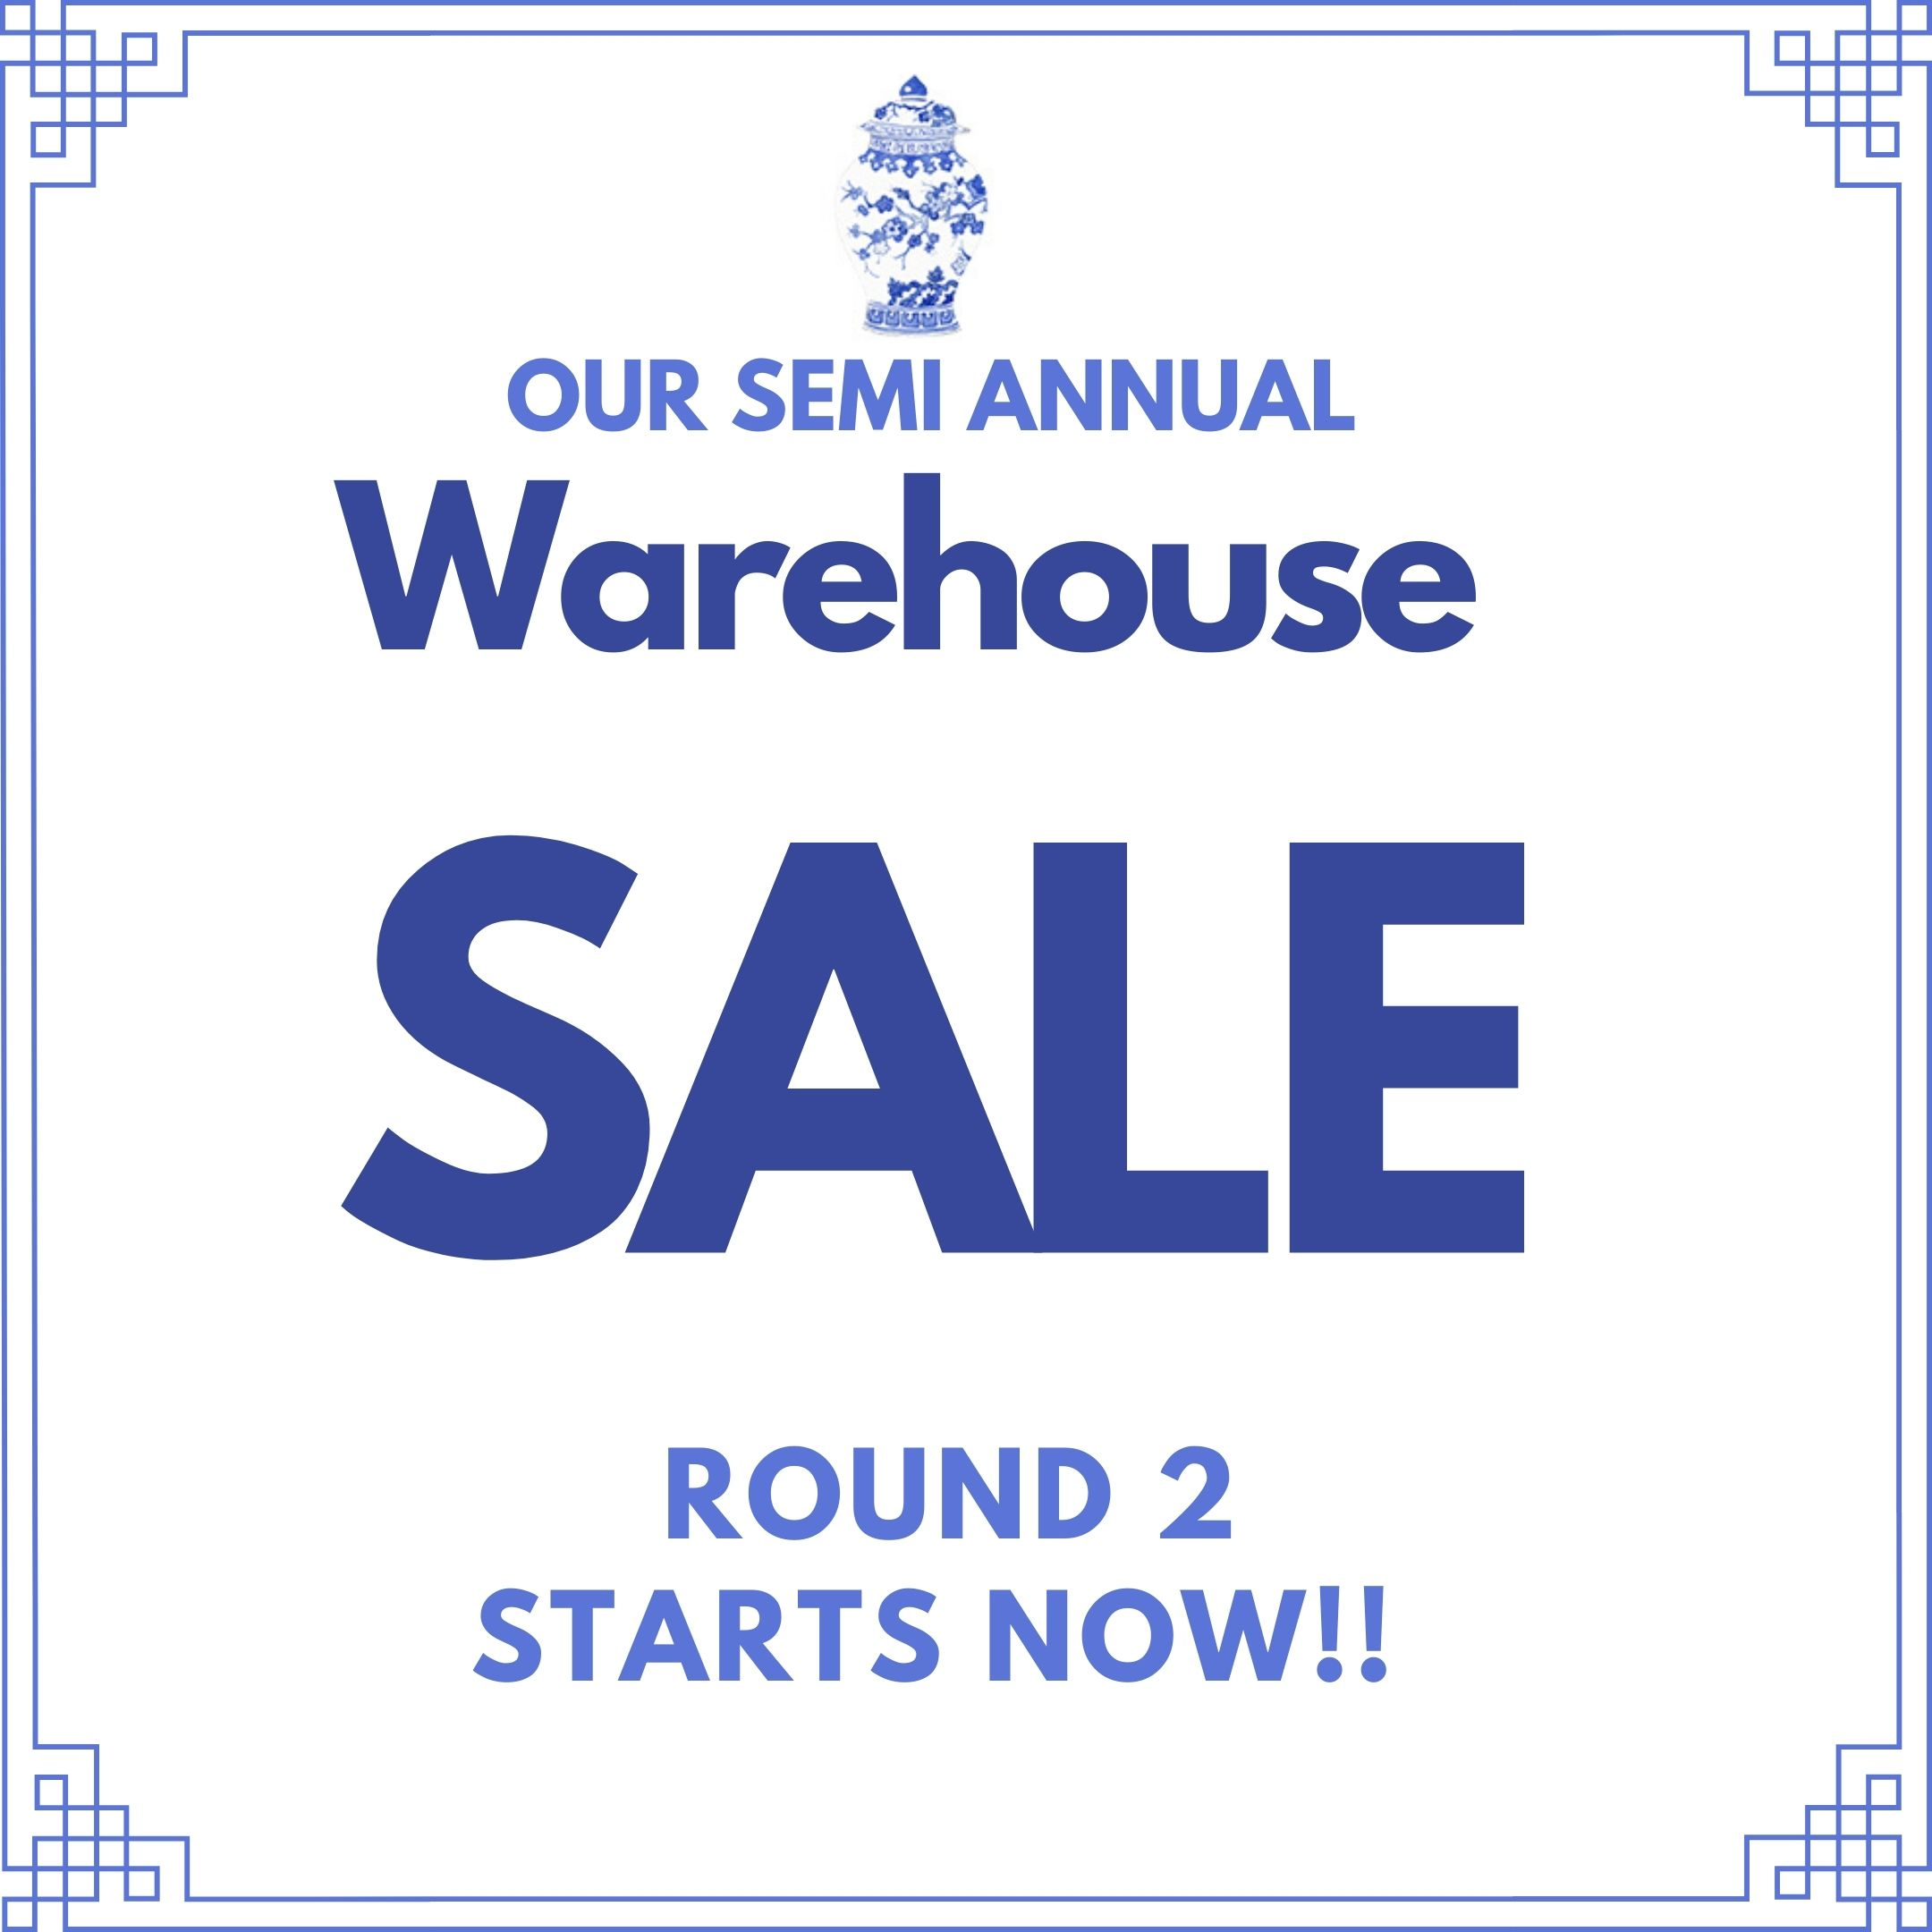 Our semi annual warehouse sale- part 2 is on!